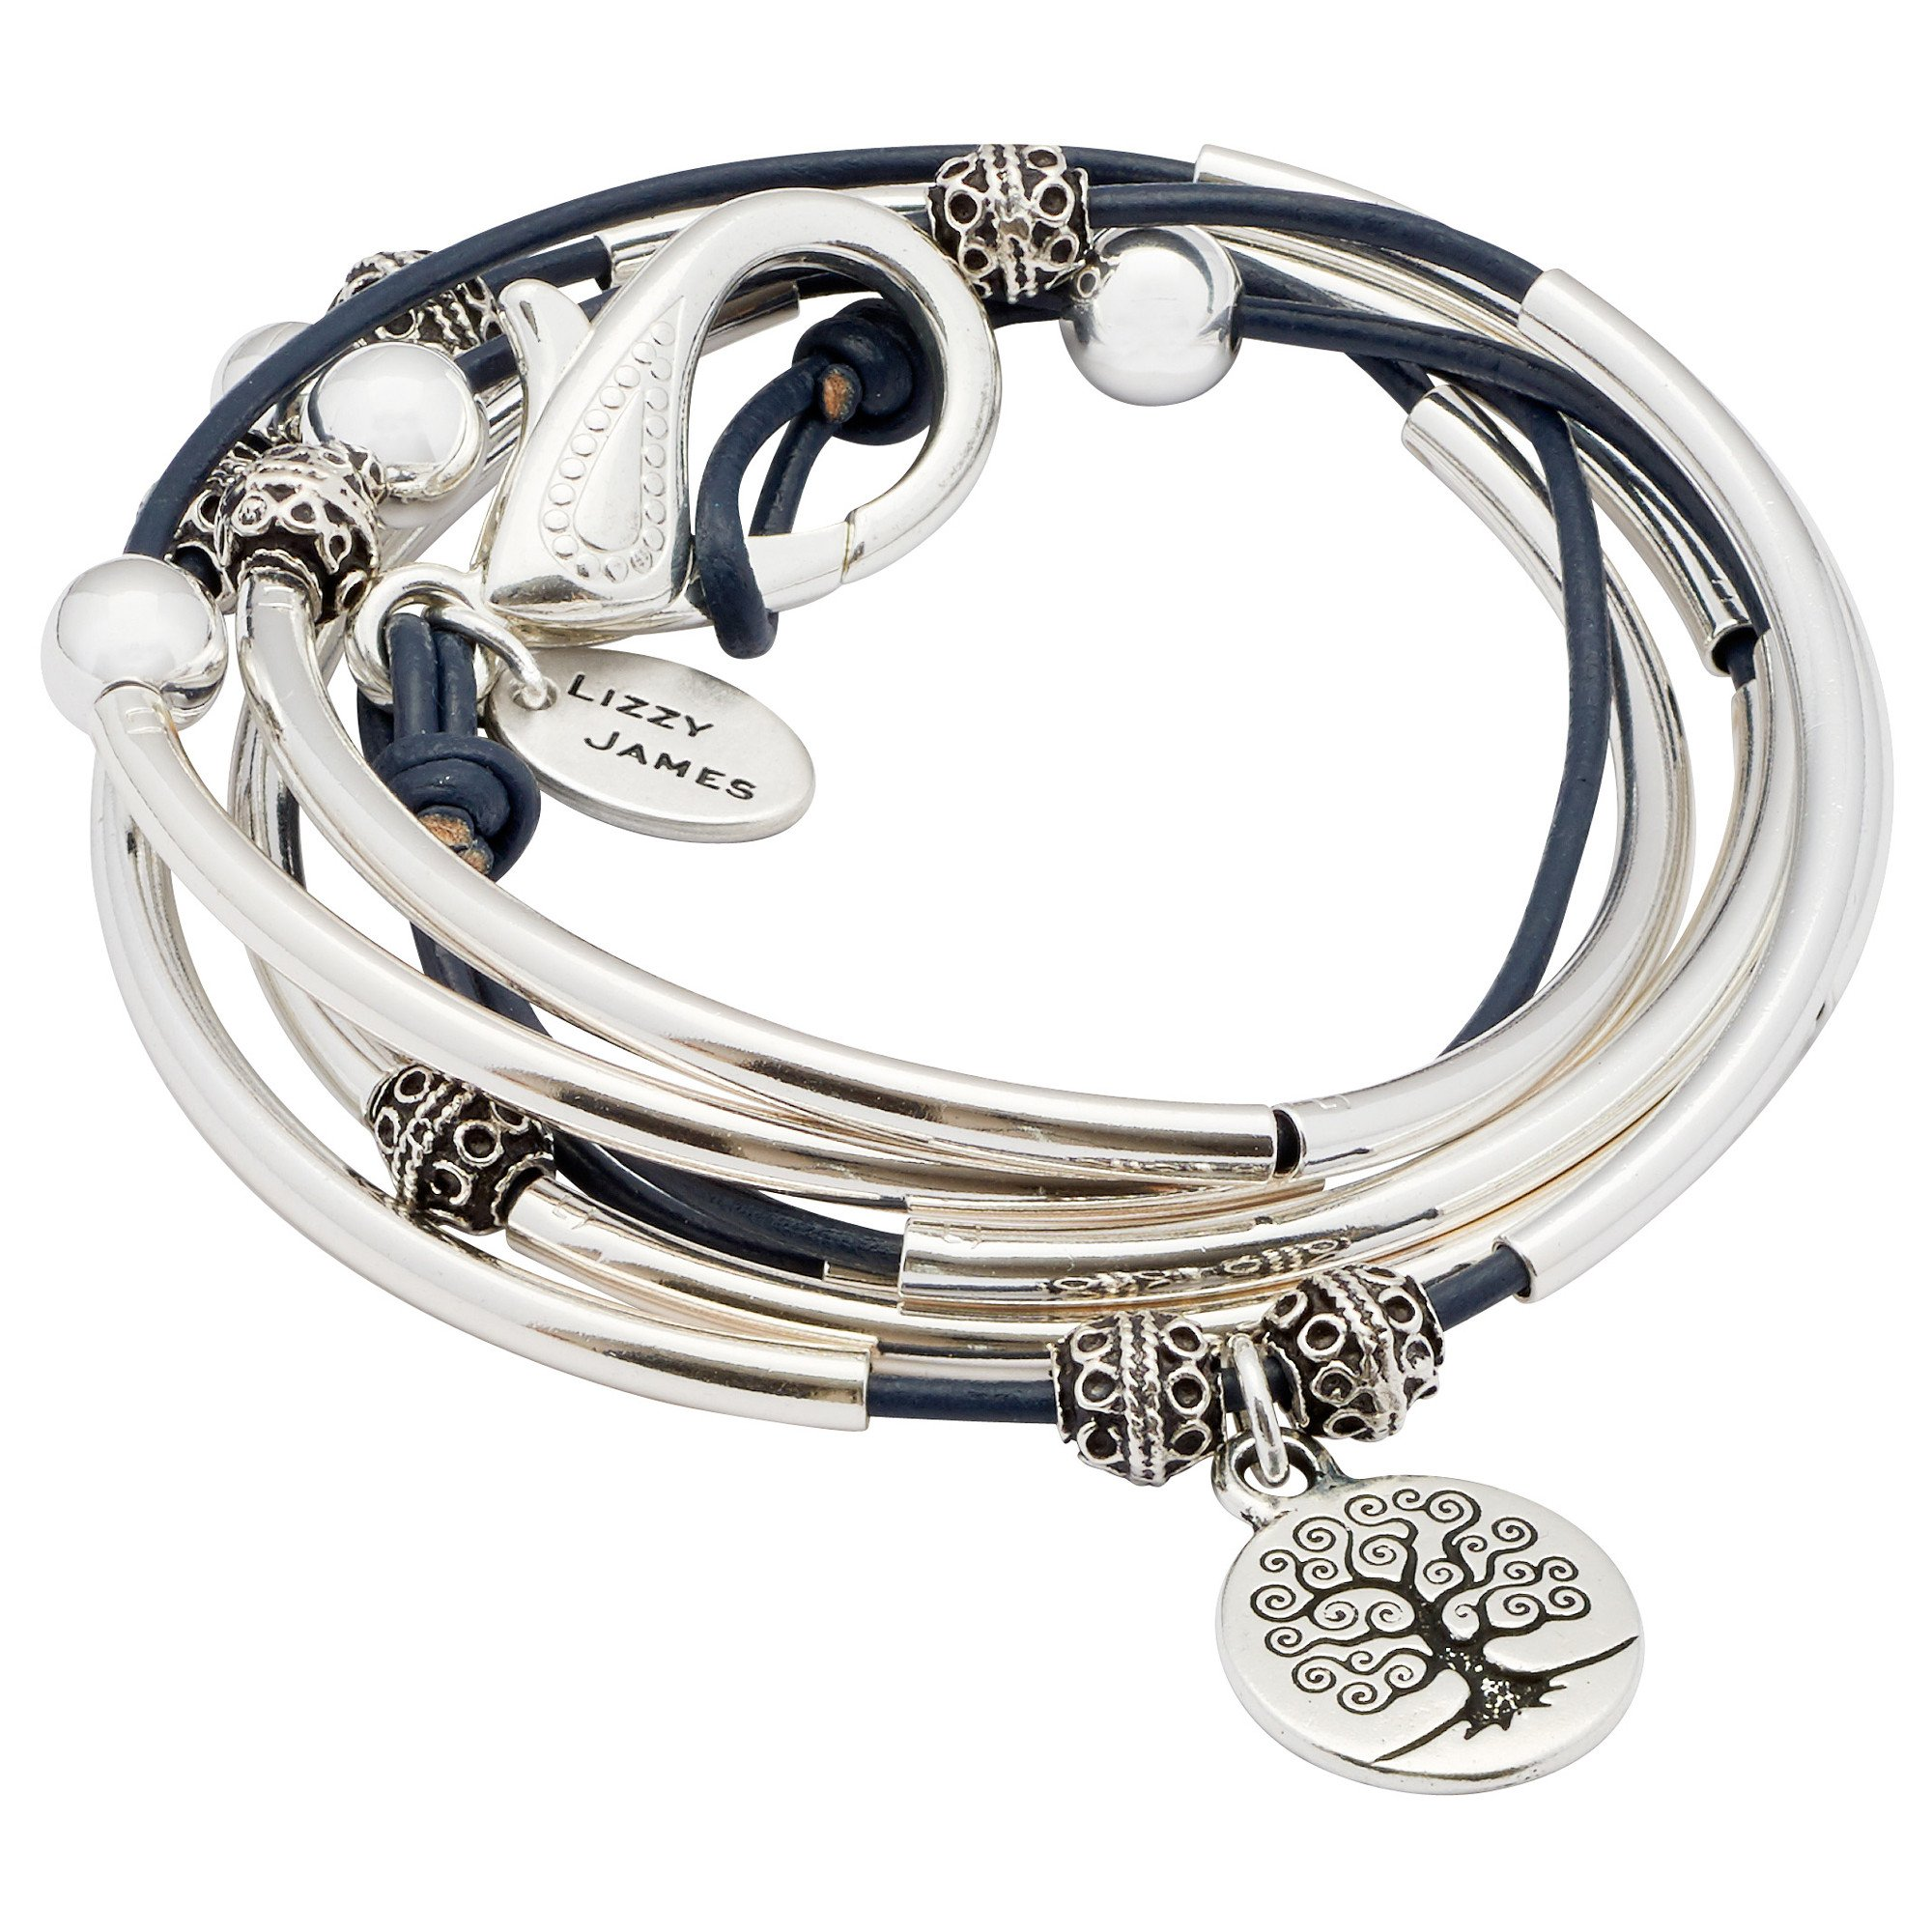 April with Tree of Life Charm Silverplate Large Bracelet Necklace with Gloss Navy Leather Wrap by Lizzy James by Lizzy James Jewelry